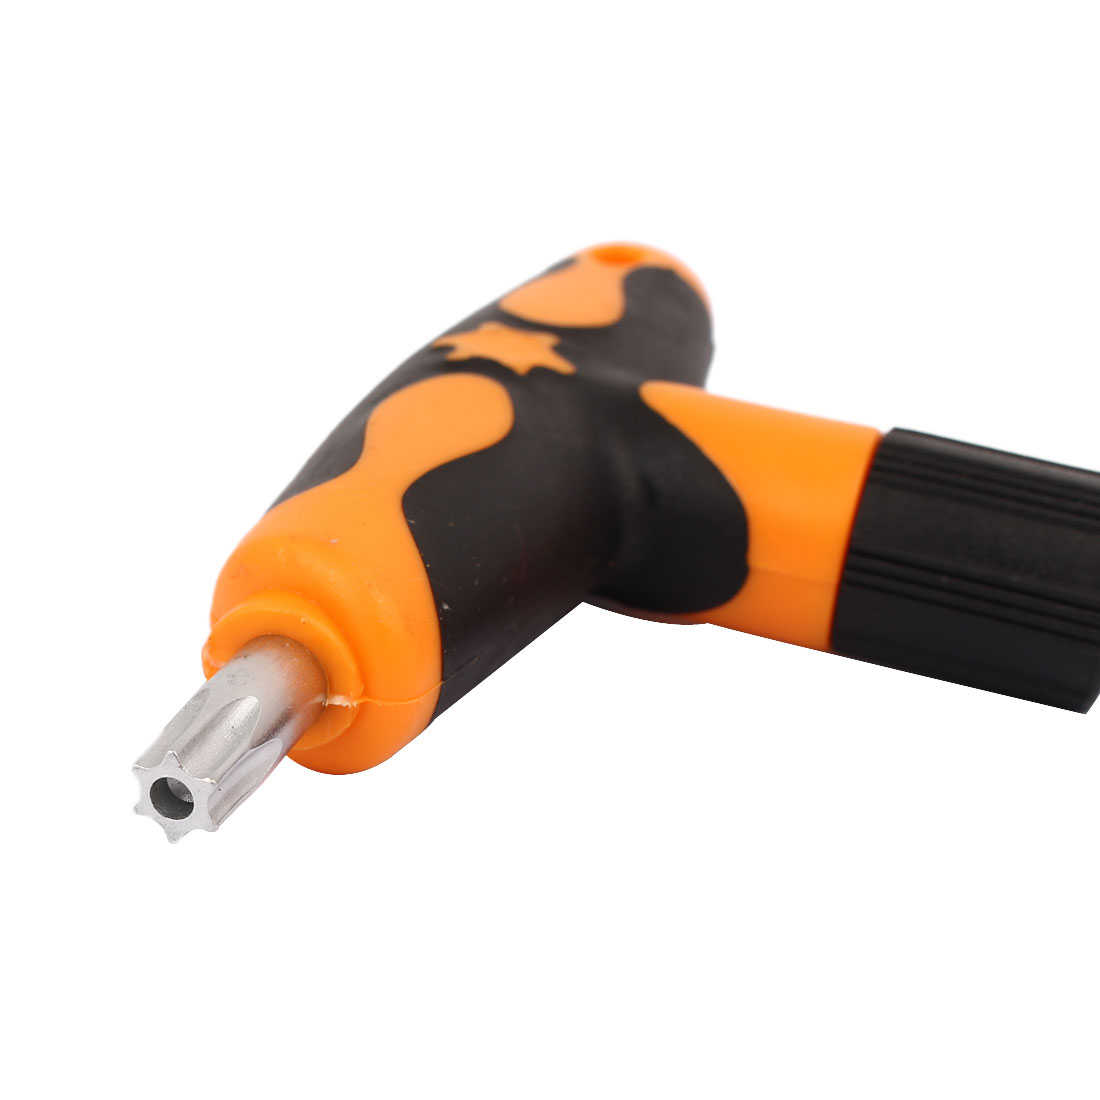 Unique Bargains T45 T-Handle Torx Security Torque Star Key CR-V Alloy Steel Screwdriver Wrench